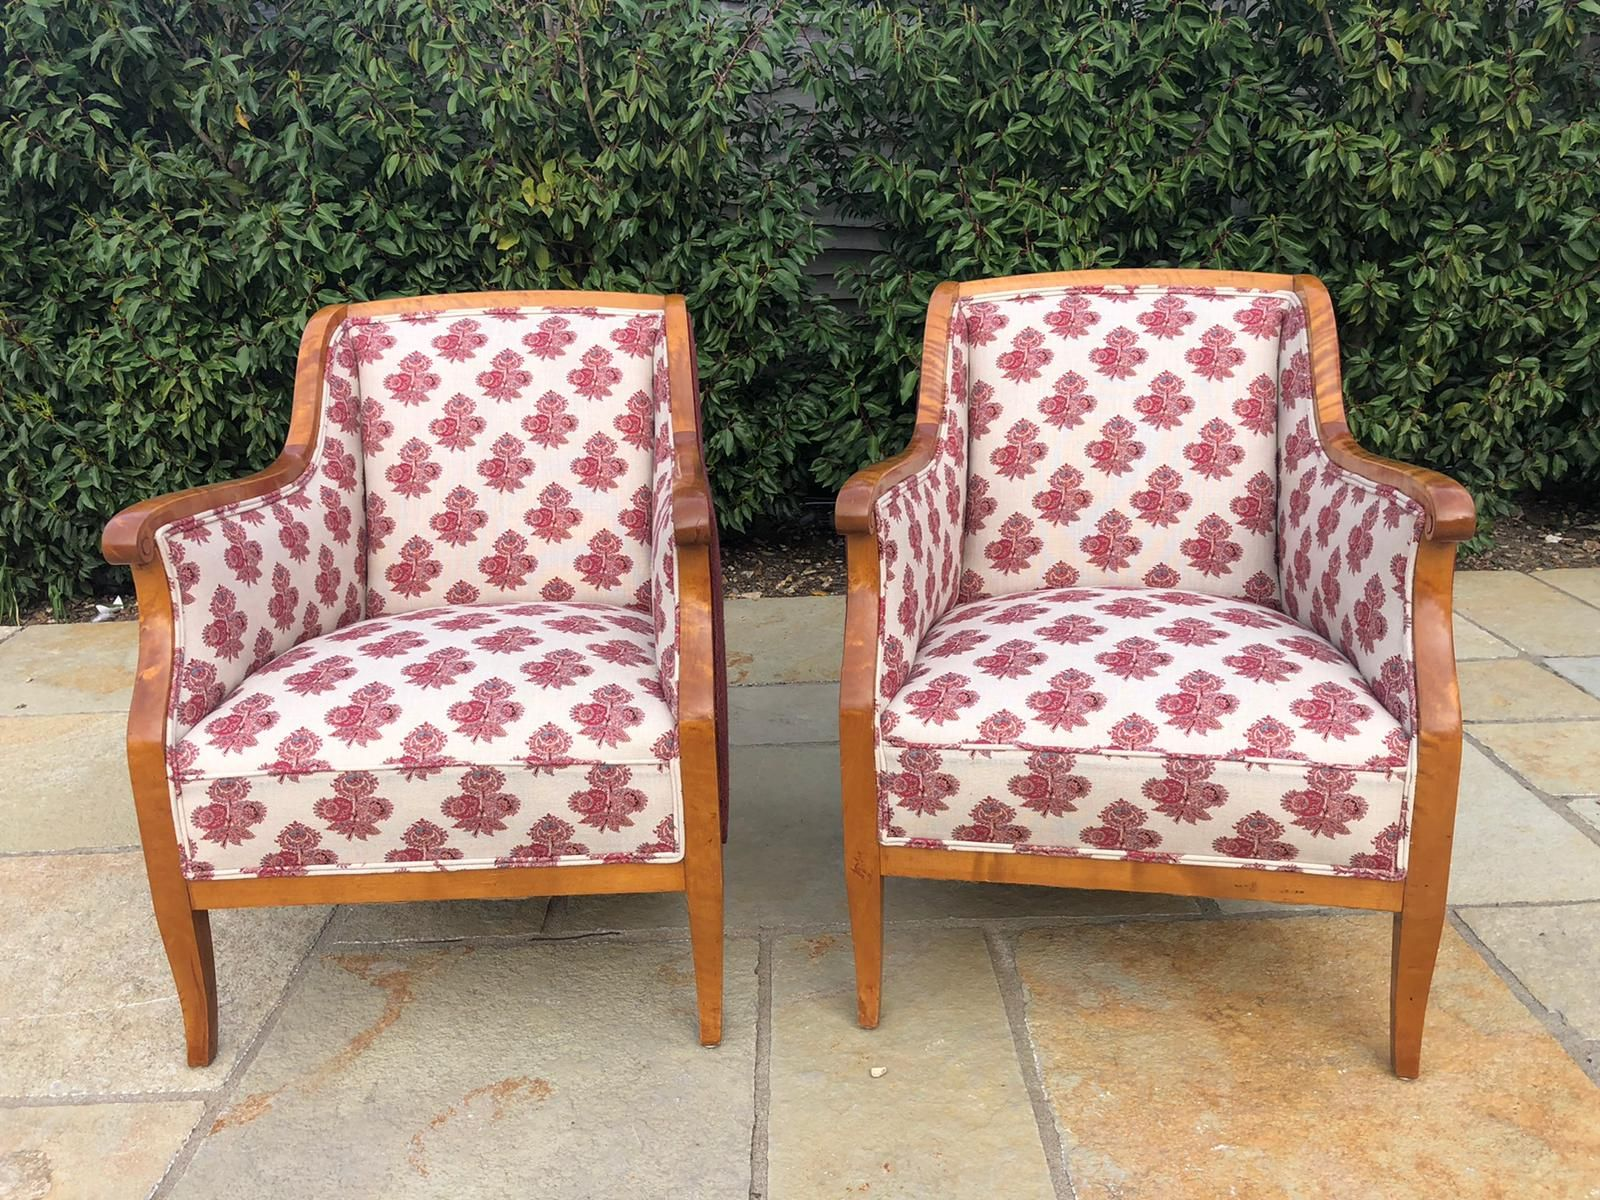 A pair of Biedermeier chairs completely reupholstered and recovered in designers guild fabric #furniturerestoration #upholstery #recovery #antiquefurniture #furnituremakeover